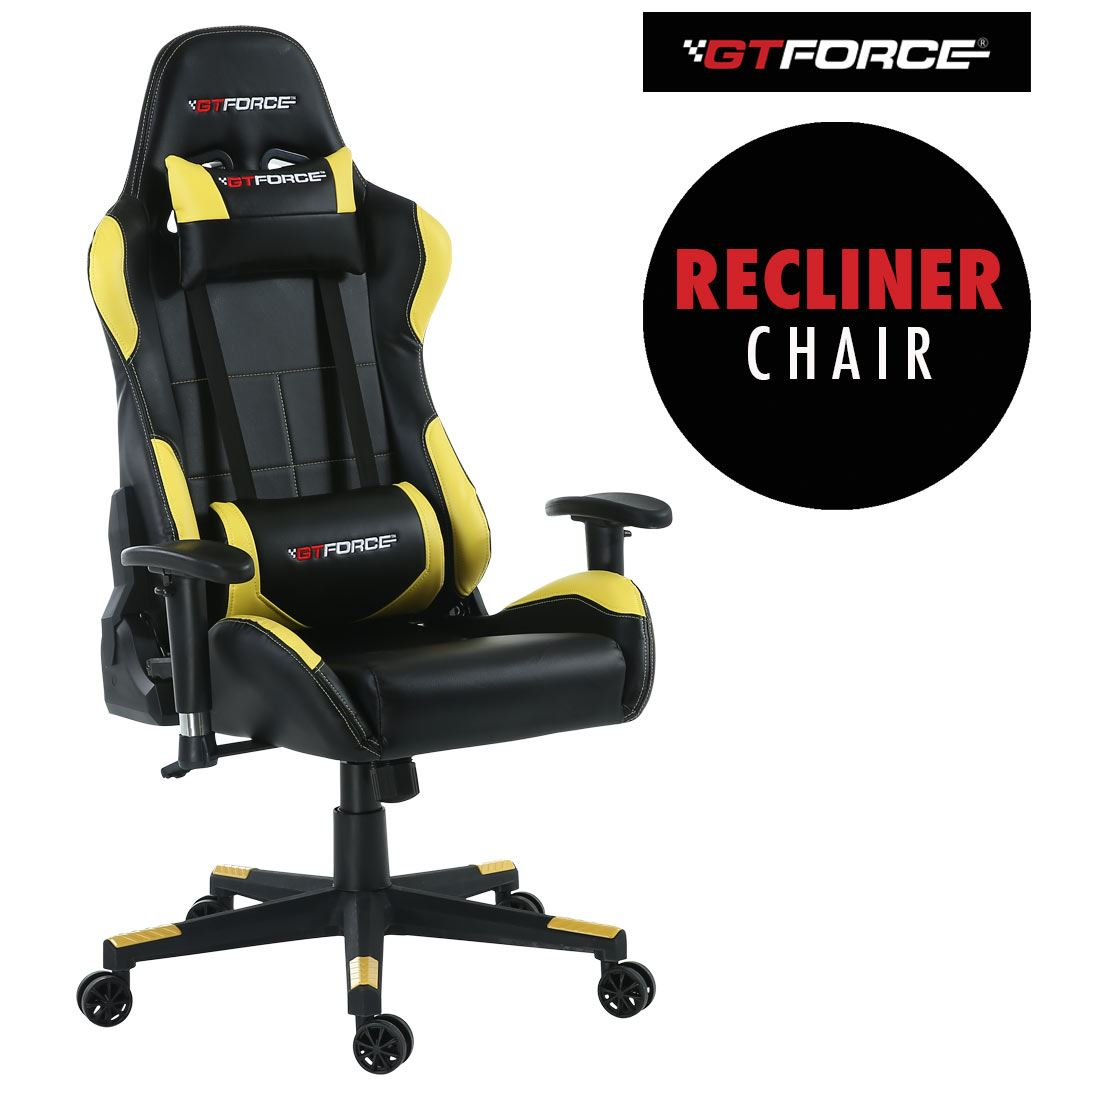 GTFORCE-PRO-SERIES-RECLINING-SPORTS-RACING-GAMING-OFFICE-DESK-CAR-LEATHER-CHAIR